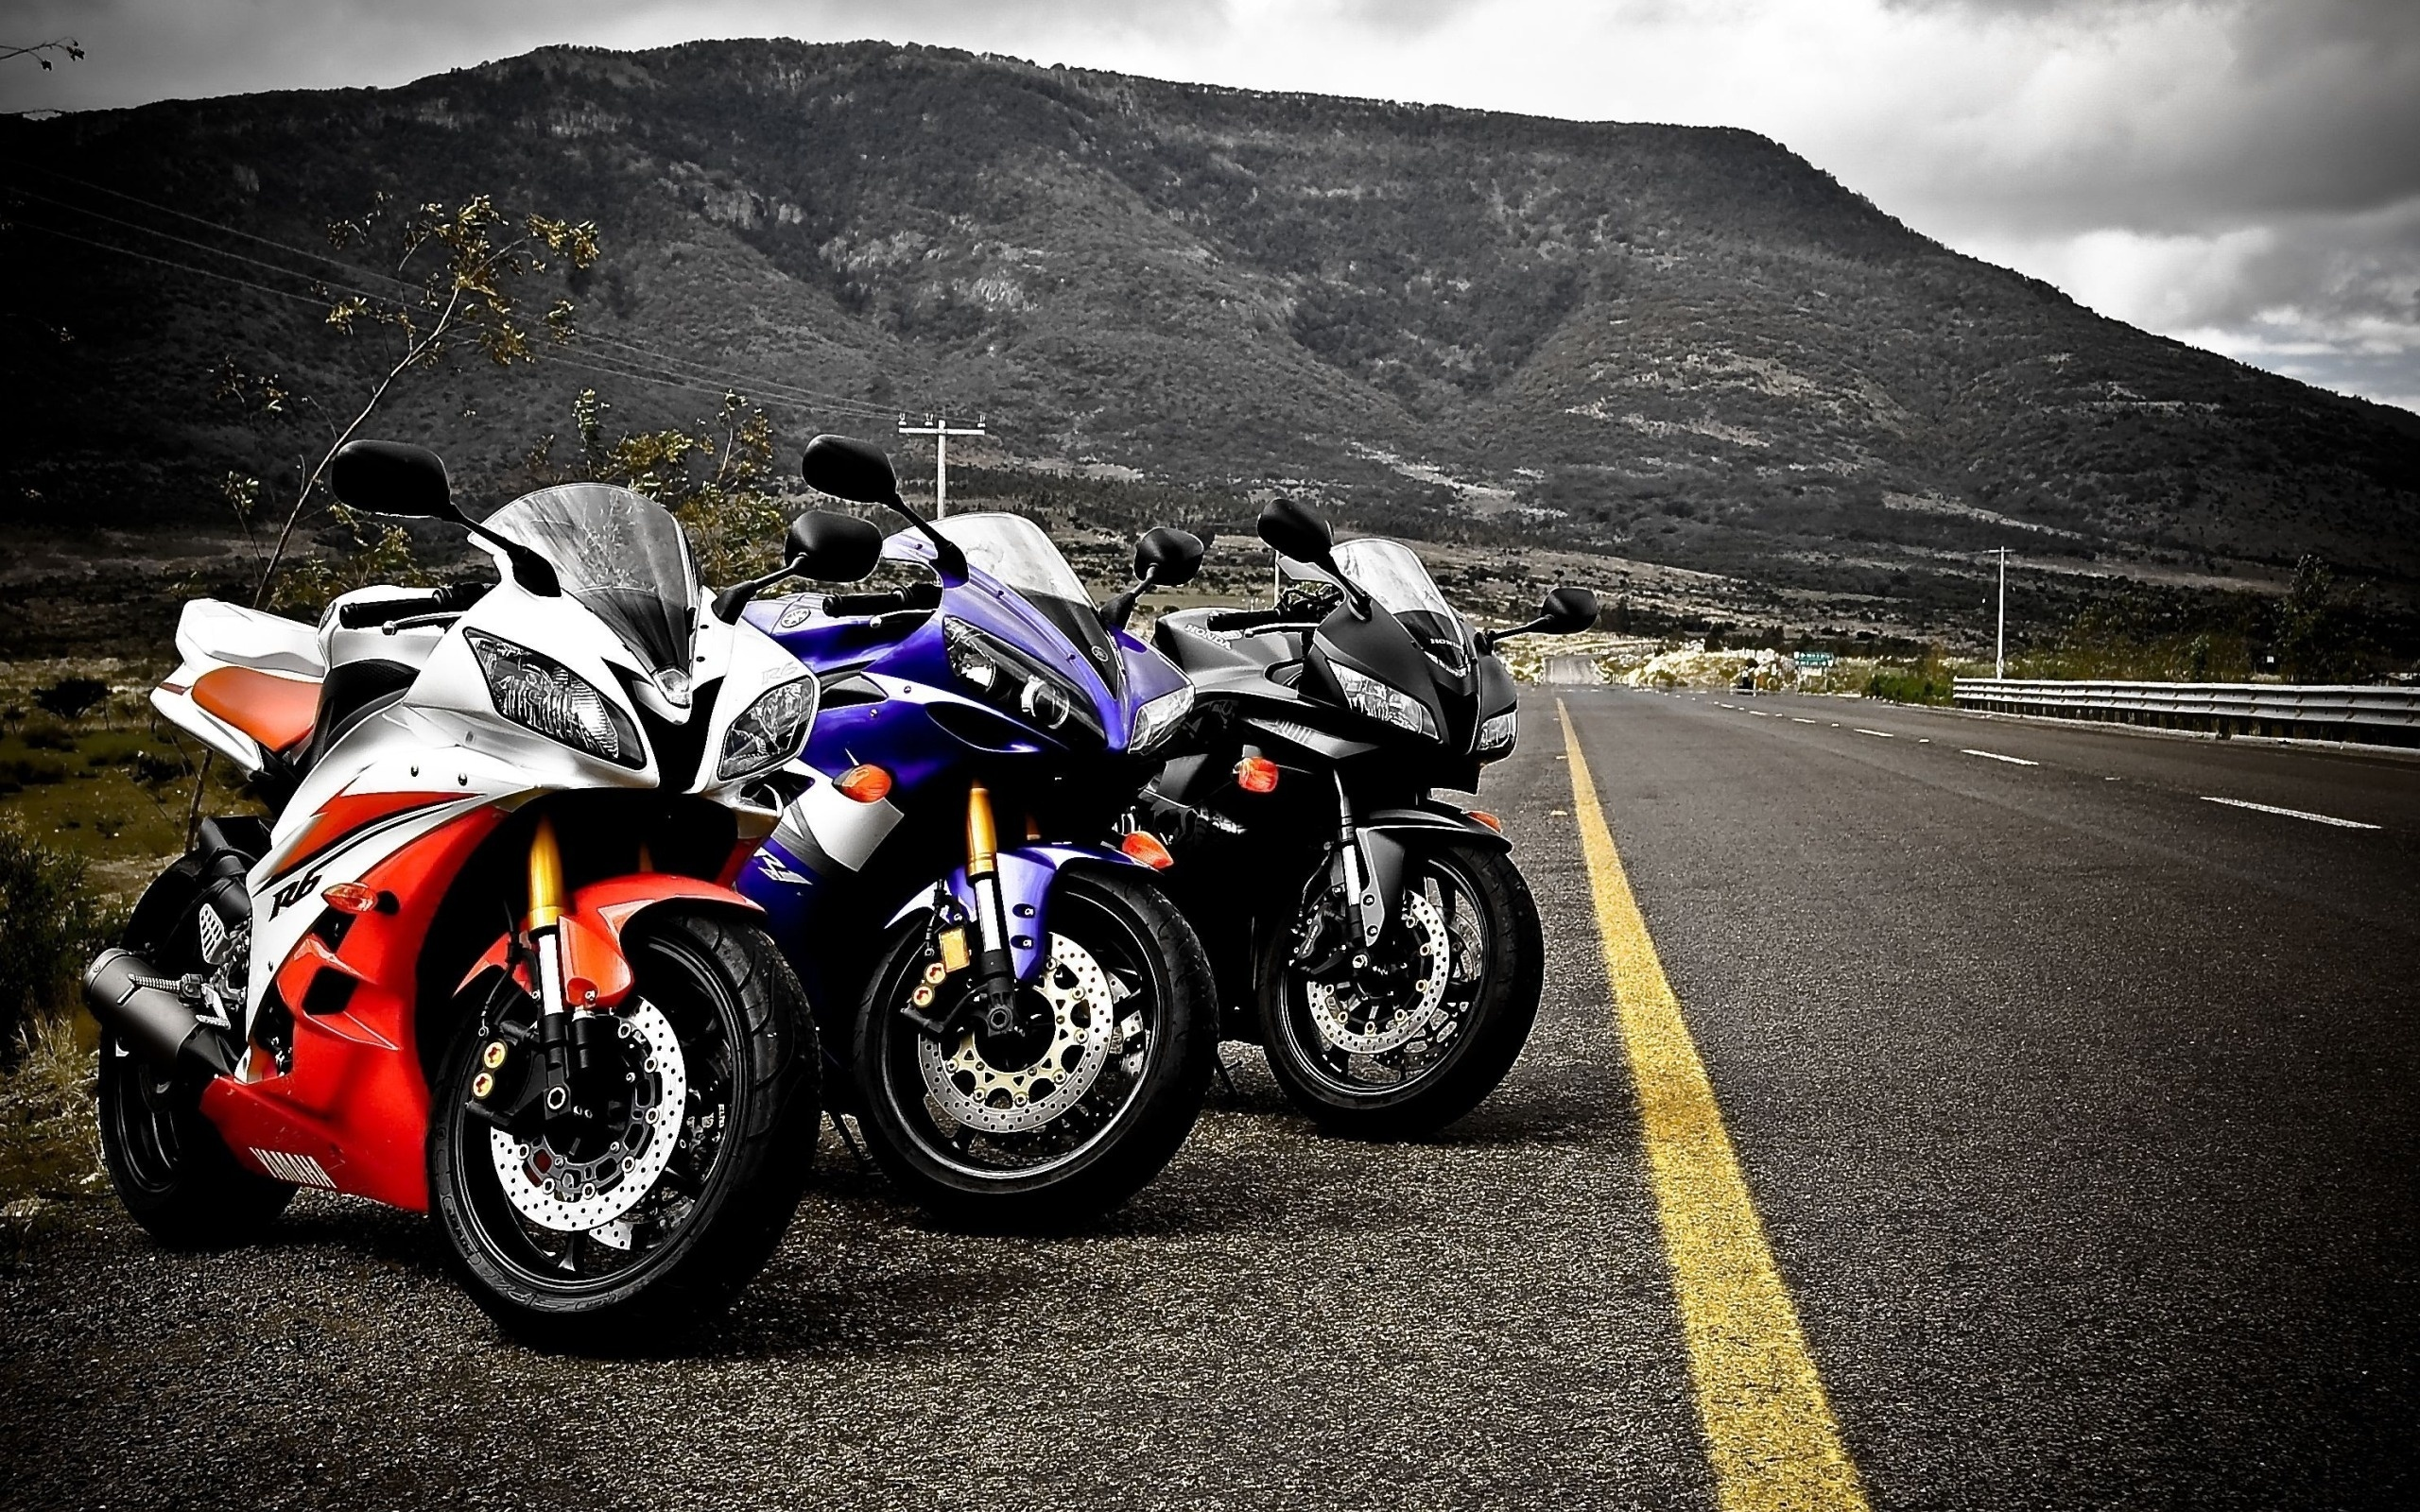 motorcycle background photo  Motorcycle HD Wallpaper | Background Image | 2560x1600 | ID:111299 ...